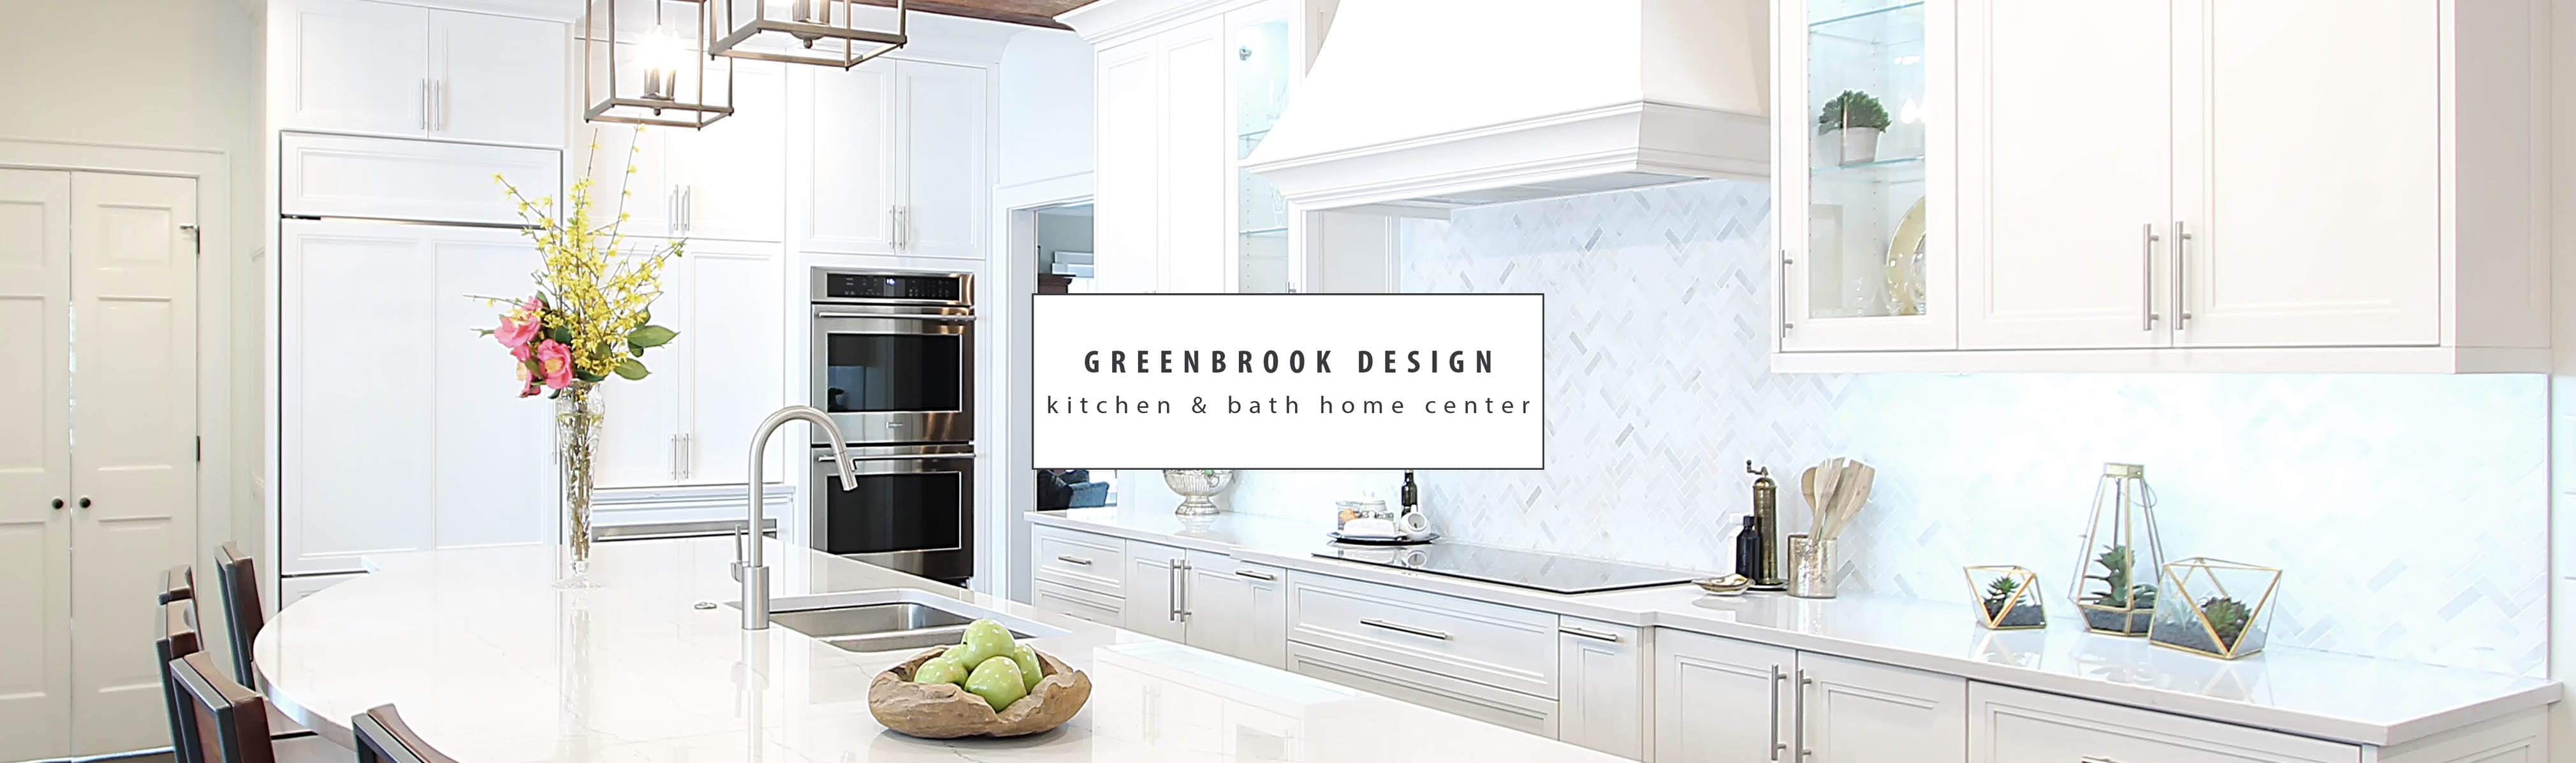 Greenbrook Greenbrook Design Center